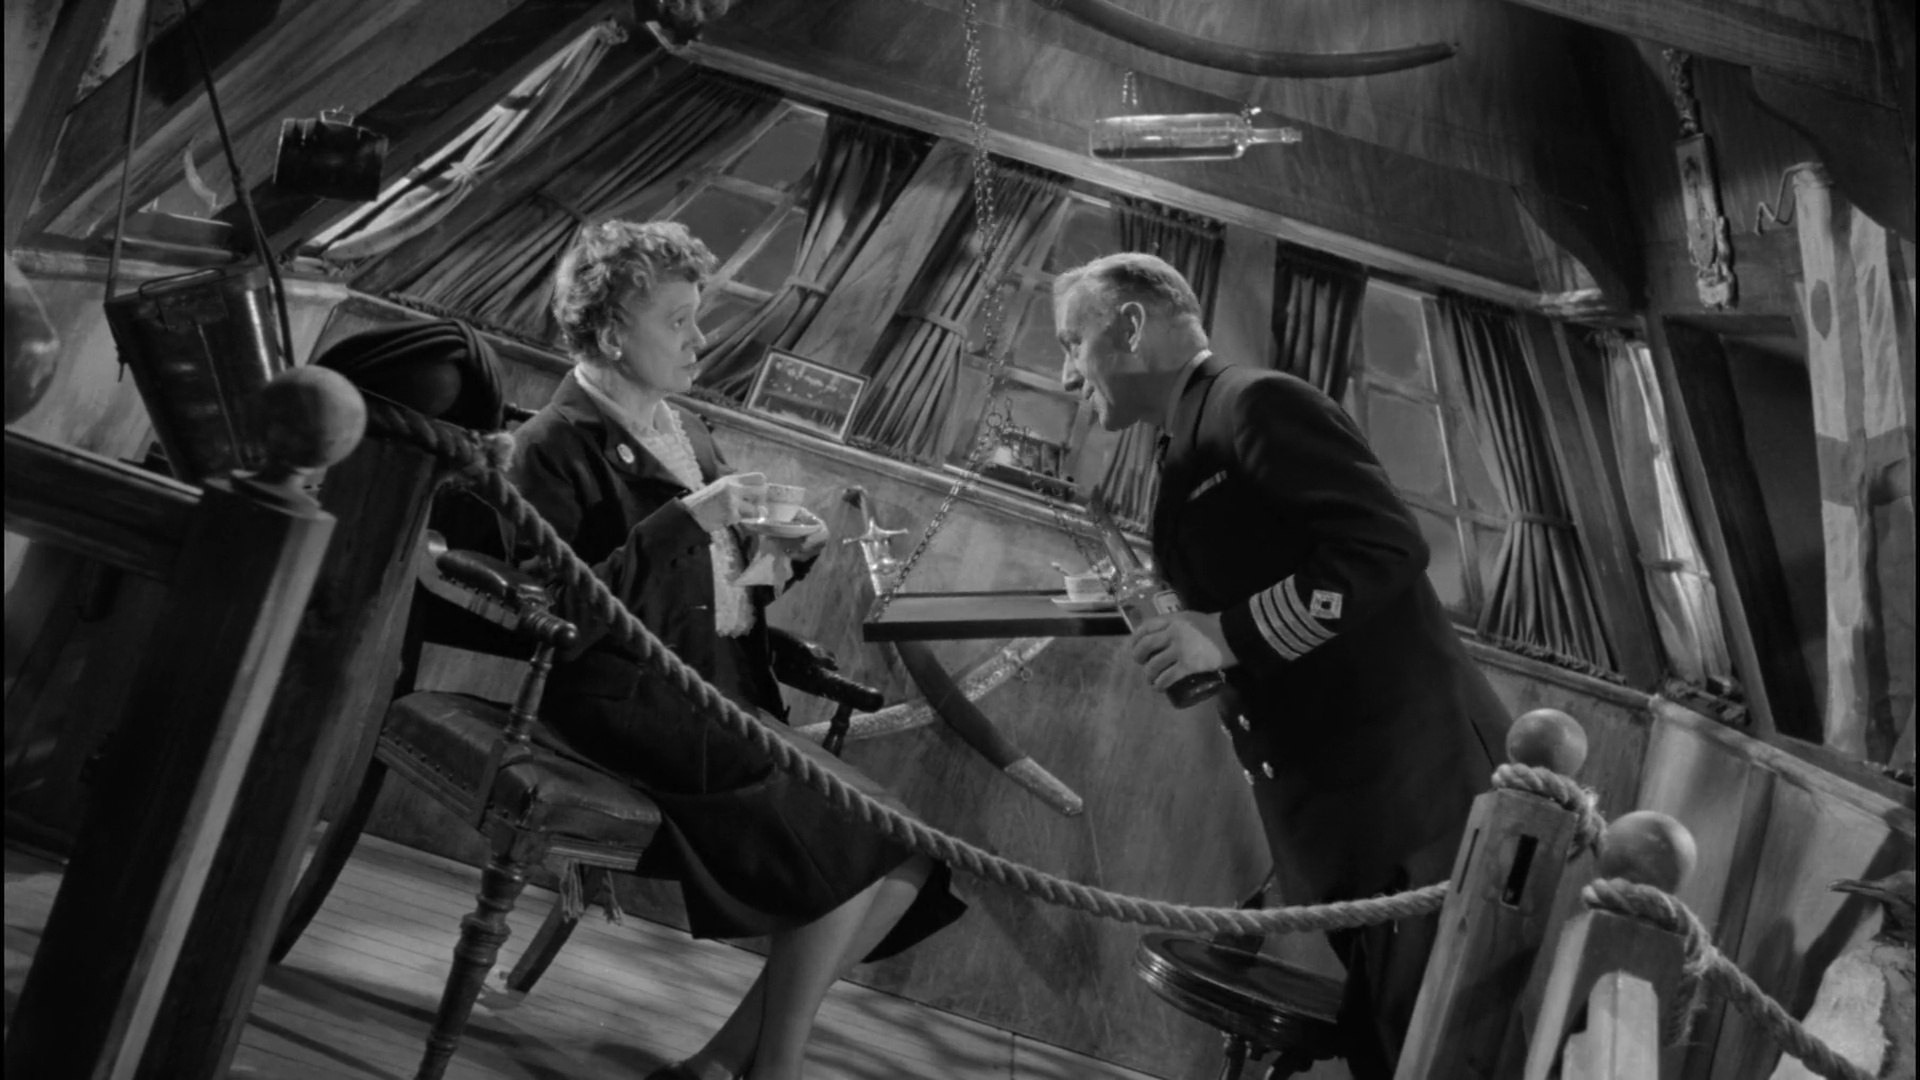 Alec Guinness and Irene Browne in Barnacle Bill (1957)